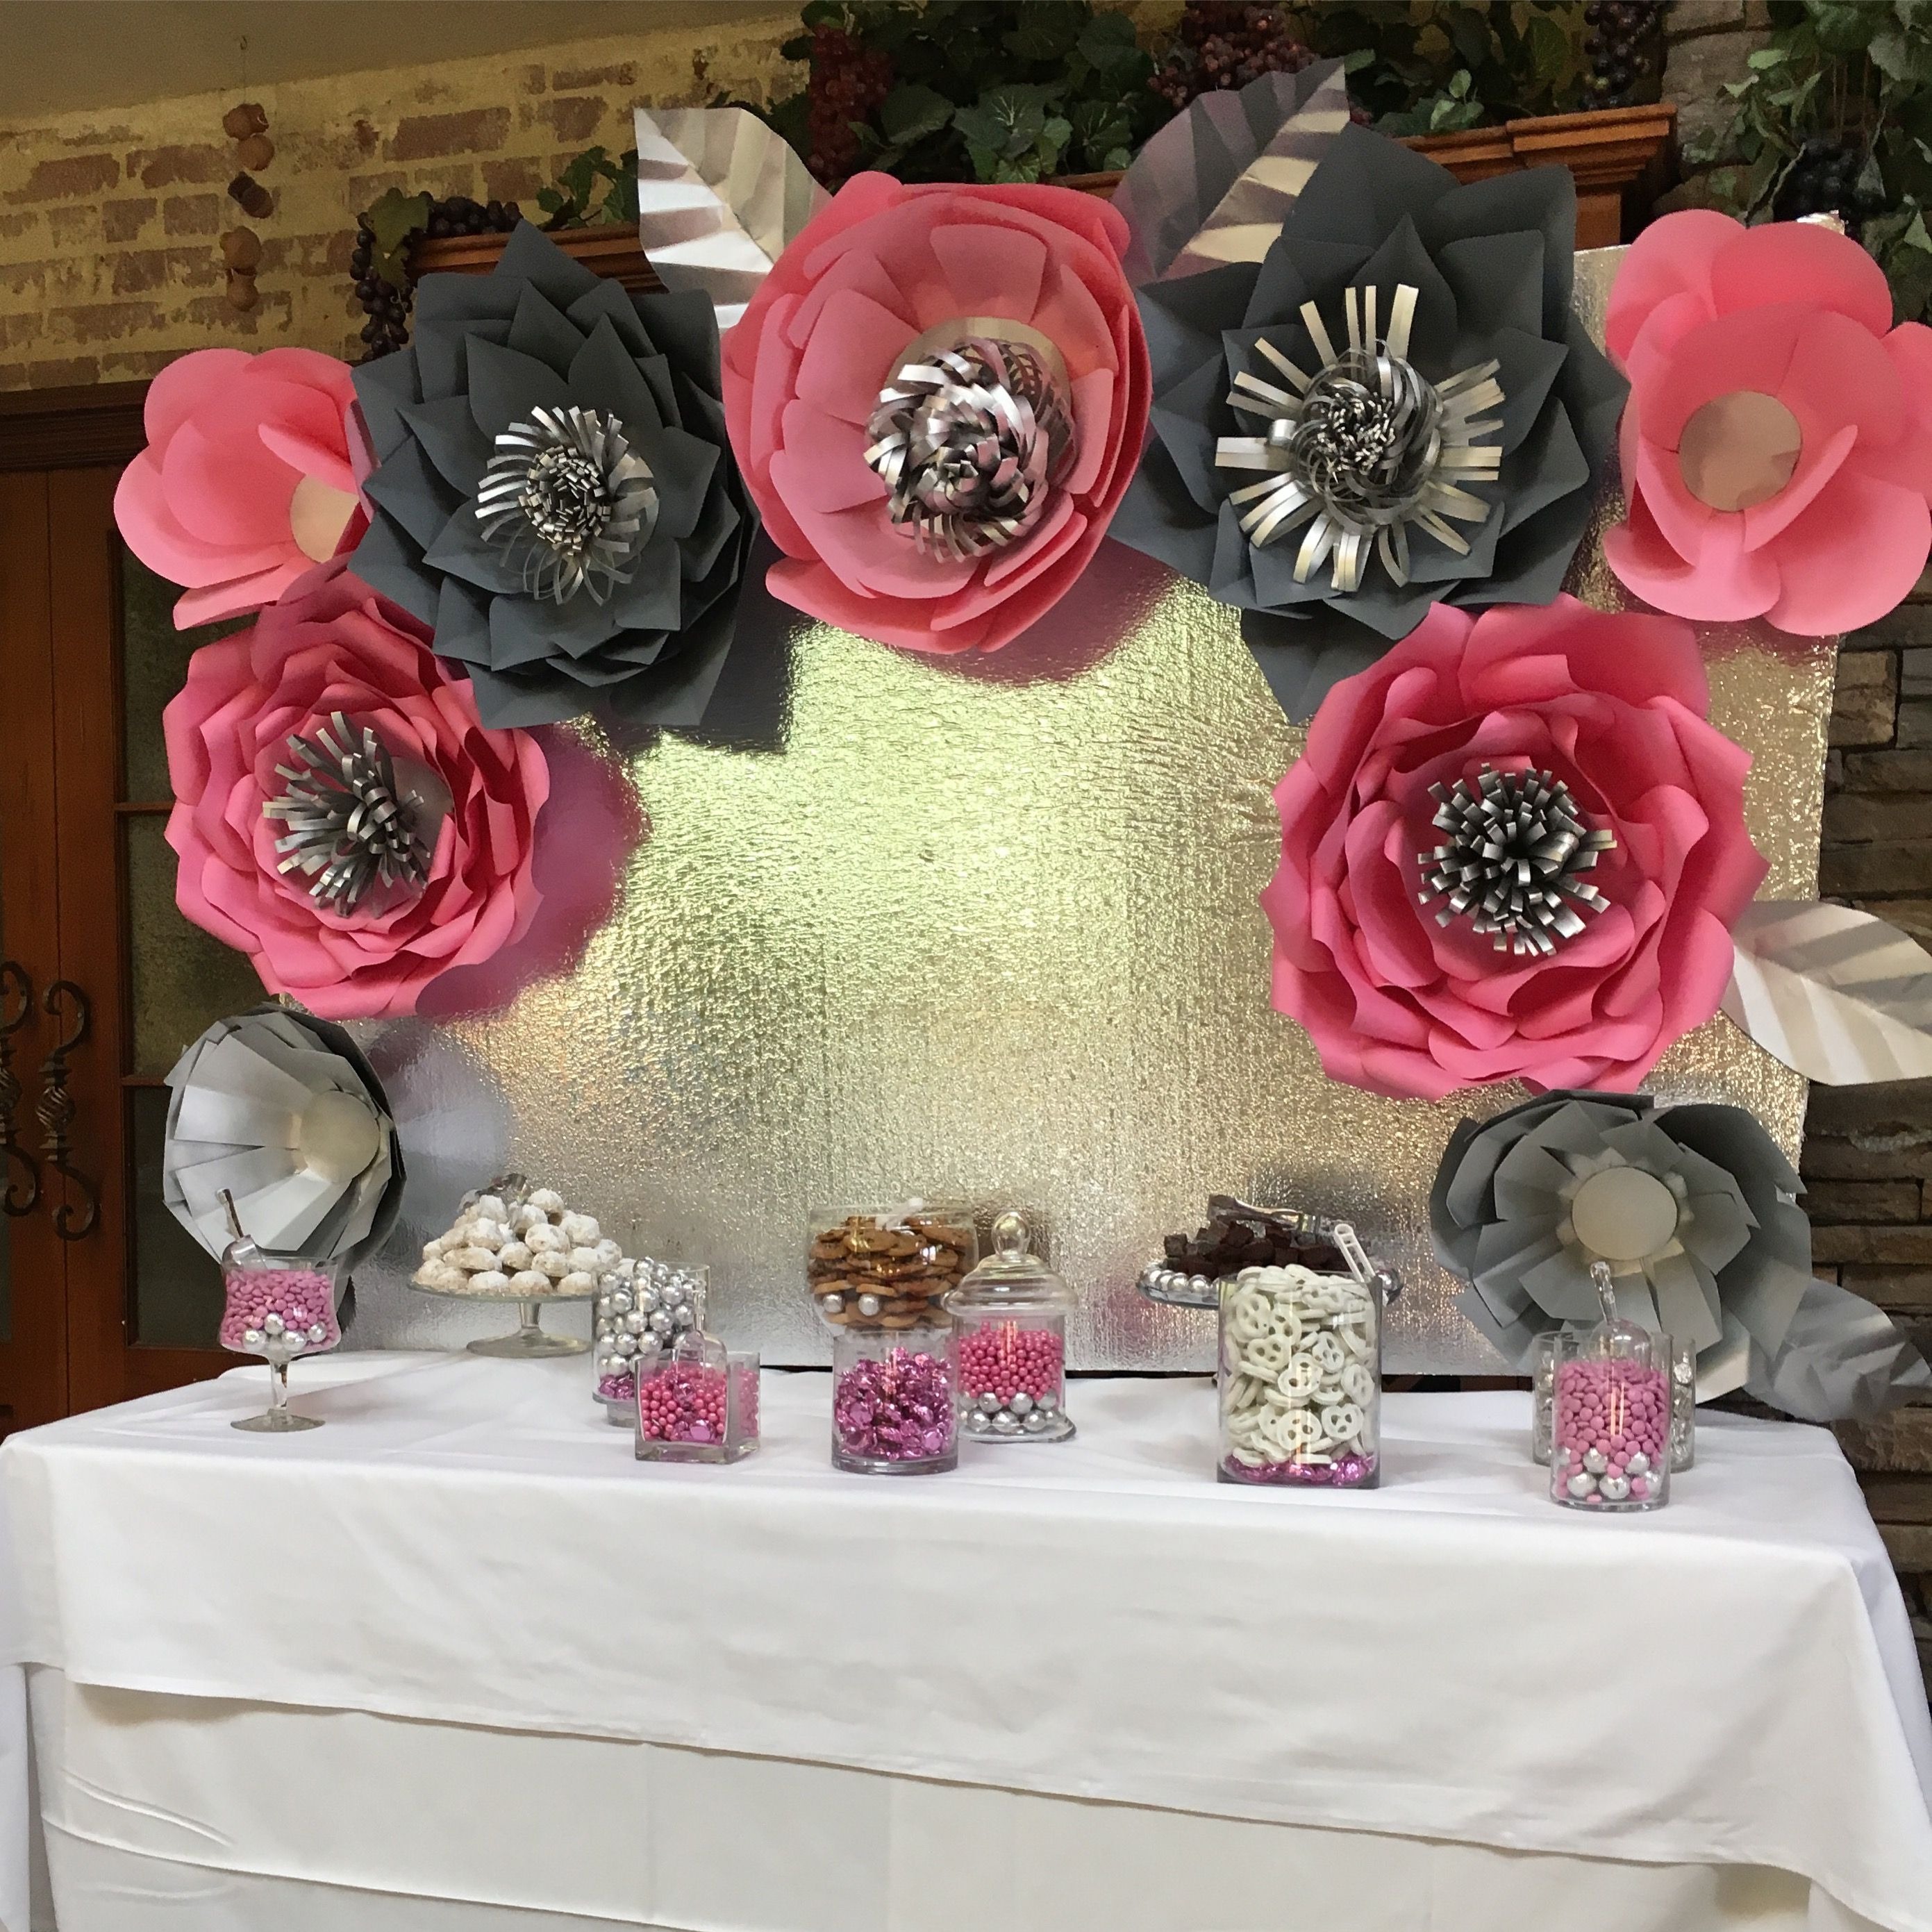 Wedding Paper Flowers Backdrop For Candy Dessert Table Pink Silver Wedding Flower Decorations Wedding Decorations Wedding Decor Elegant